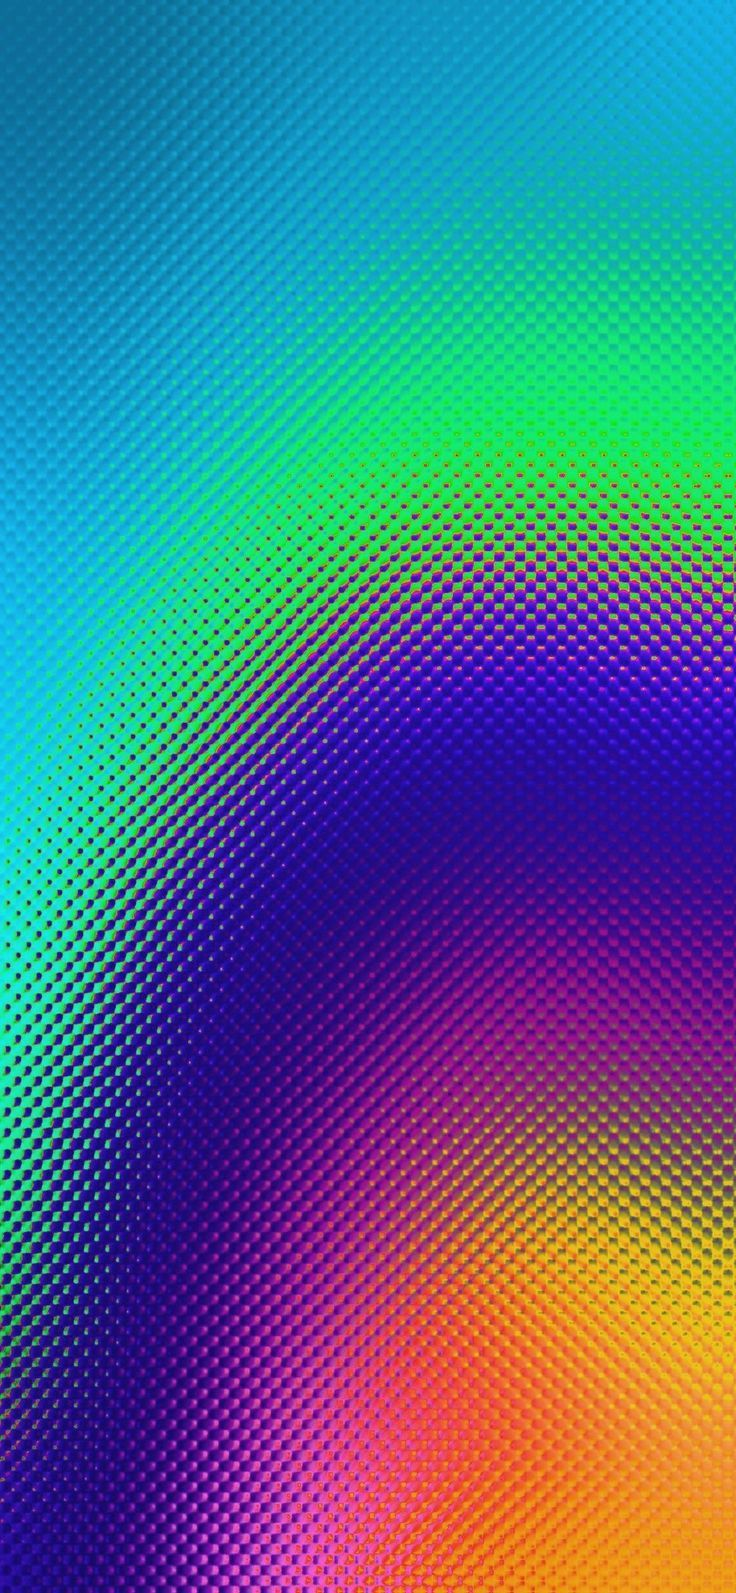 Awesome Iphone X Wallpaper Ios 11 Iphone X Purple Blue Green